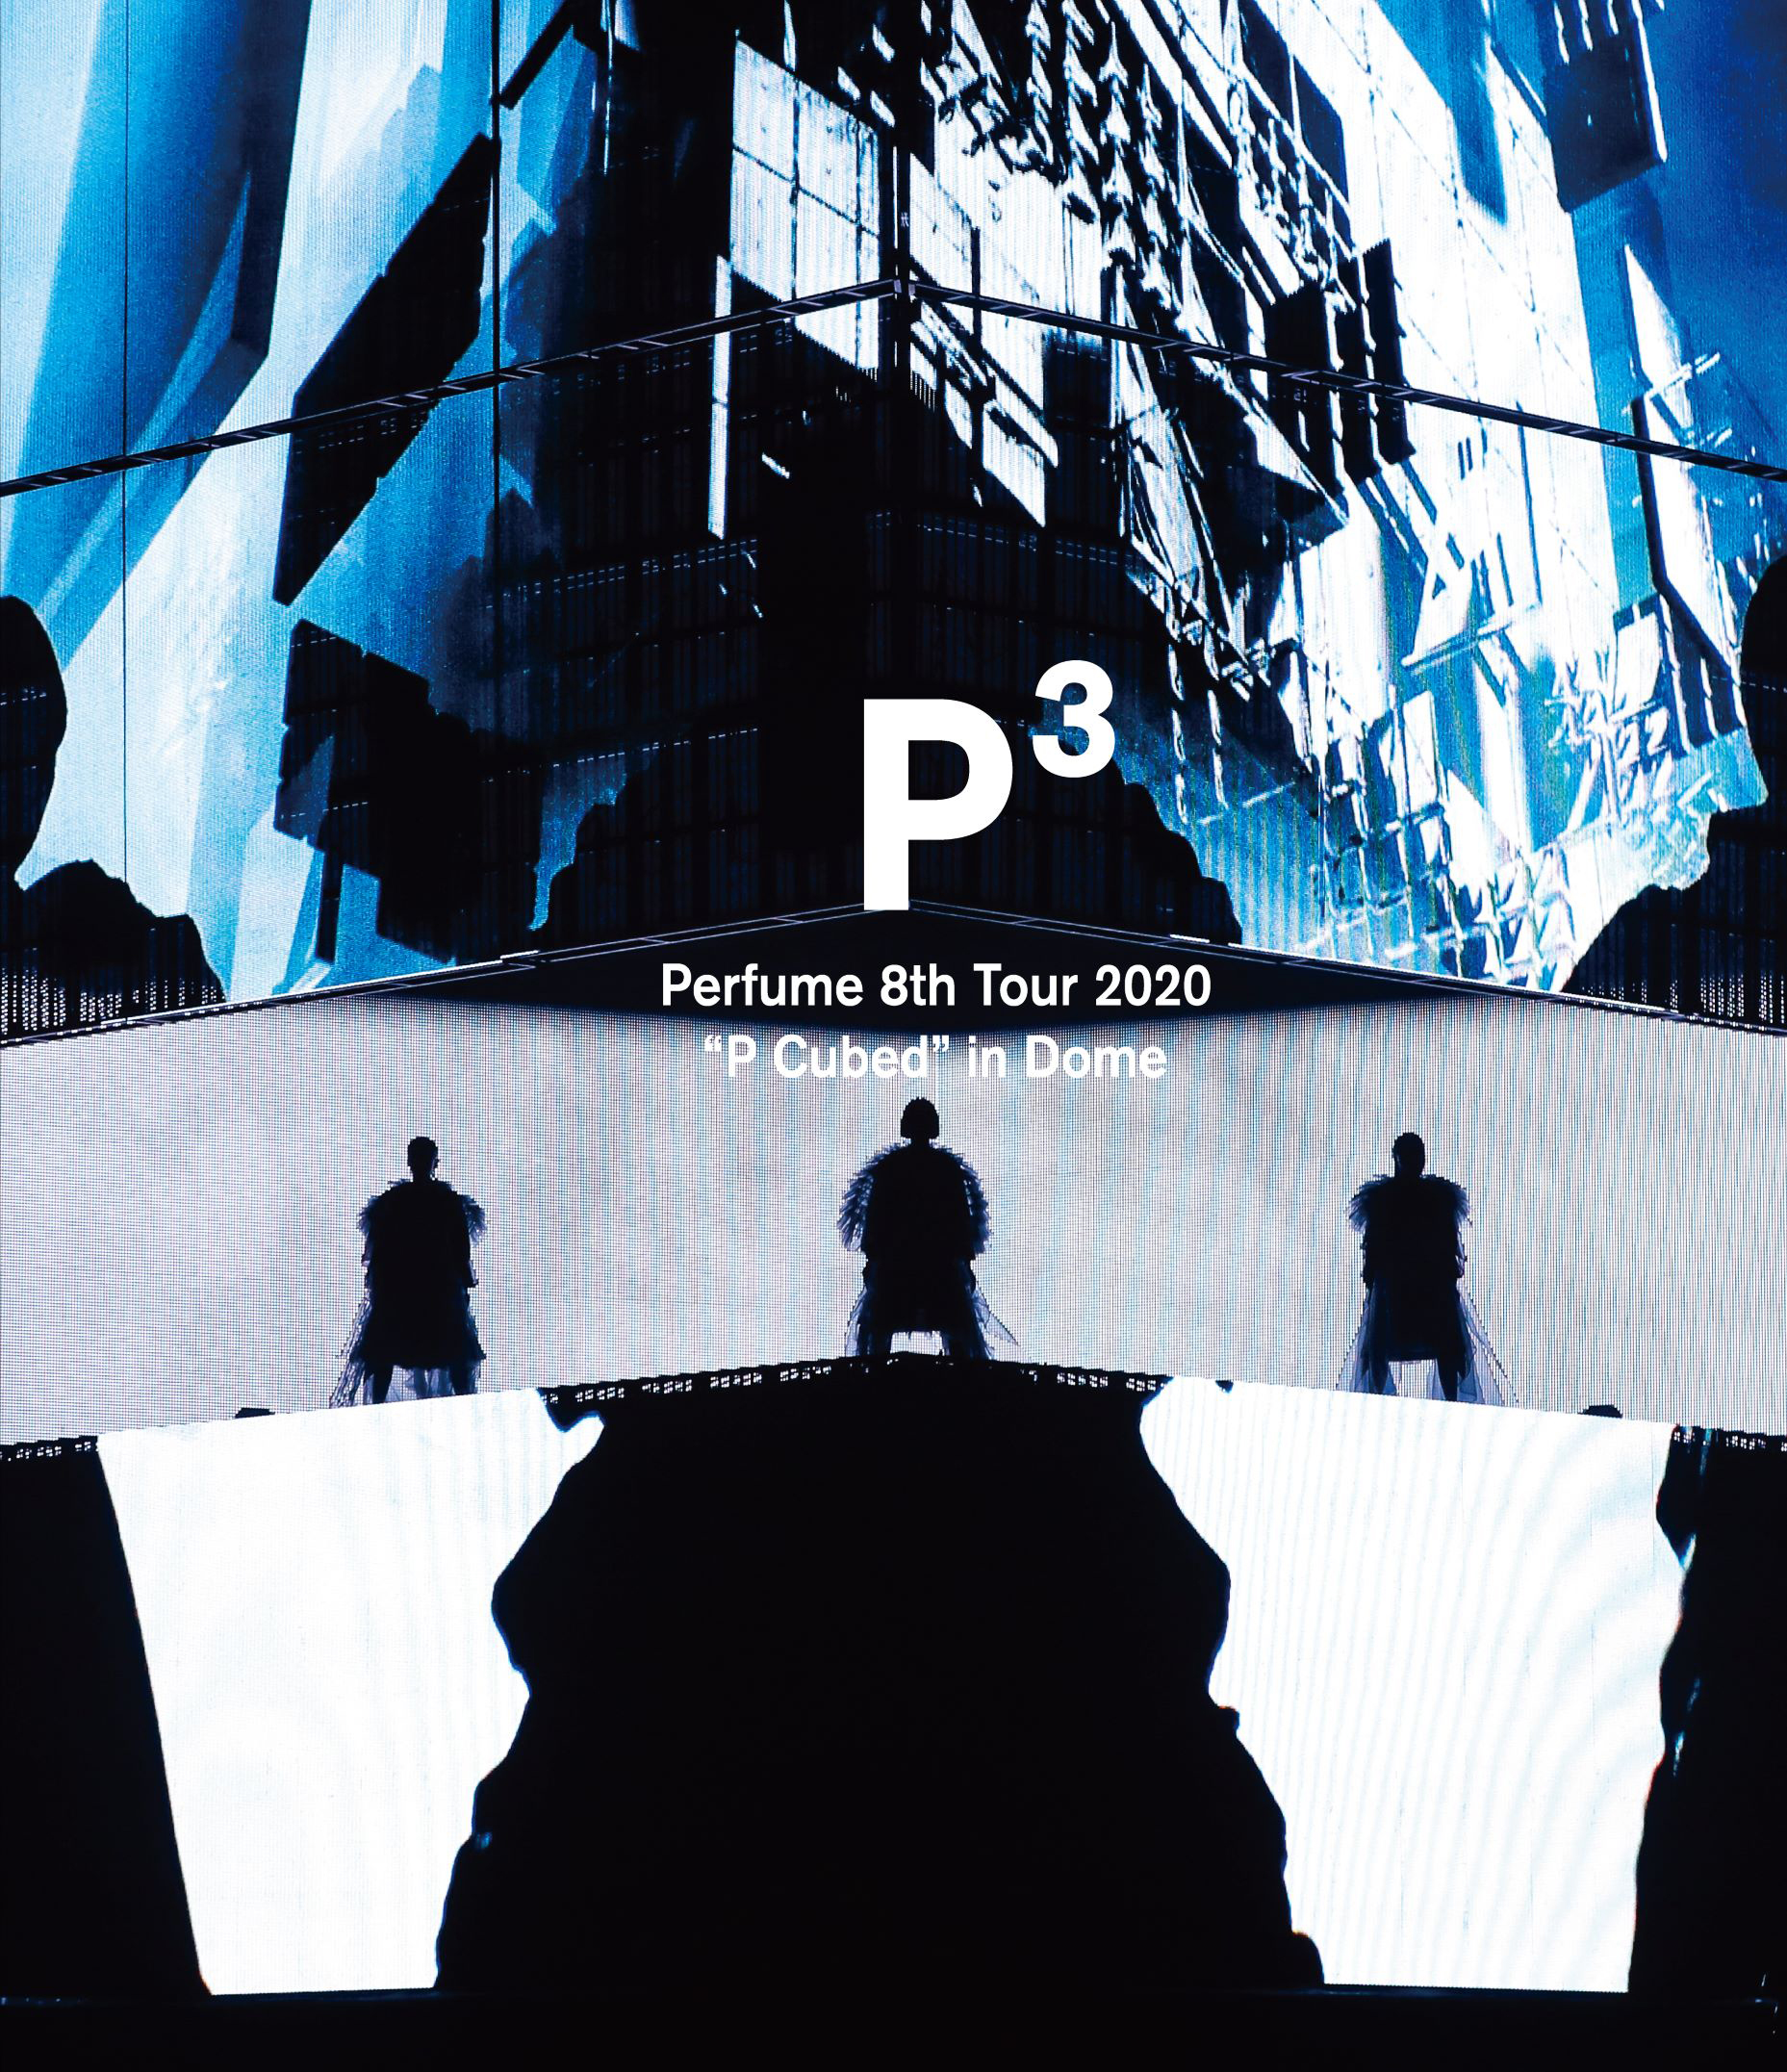 """「Perfume 8th Tour 2020 """"P Cubed"""" in Dome」通常盤"""